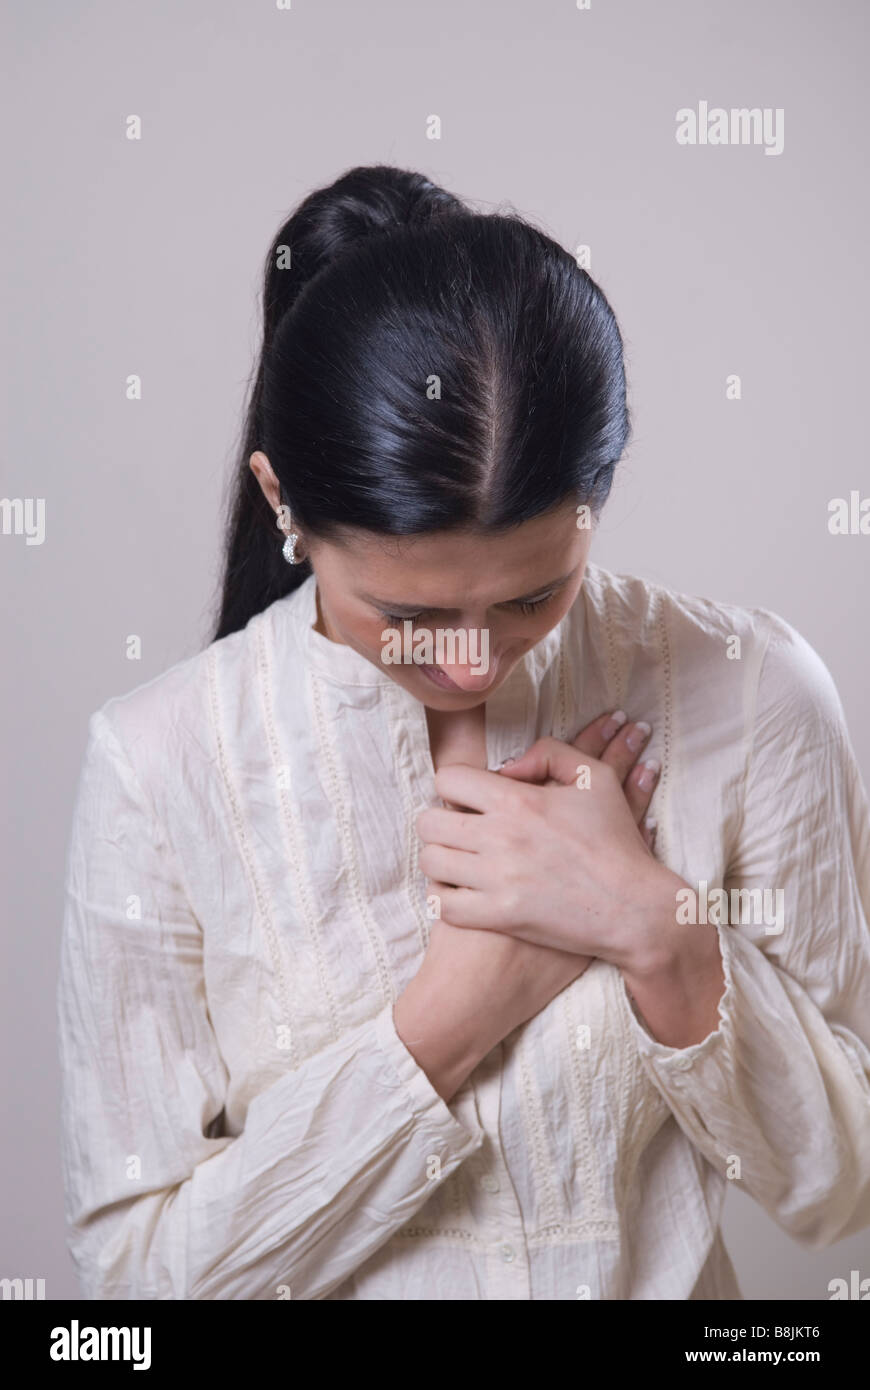 Young woman hands over heart - Stock Image